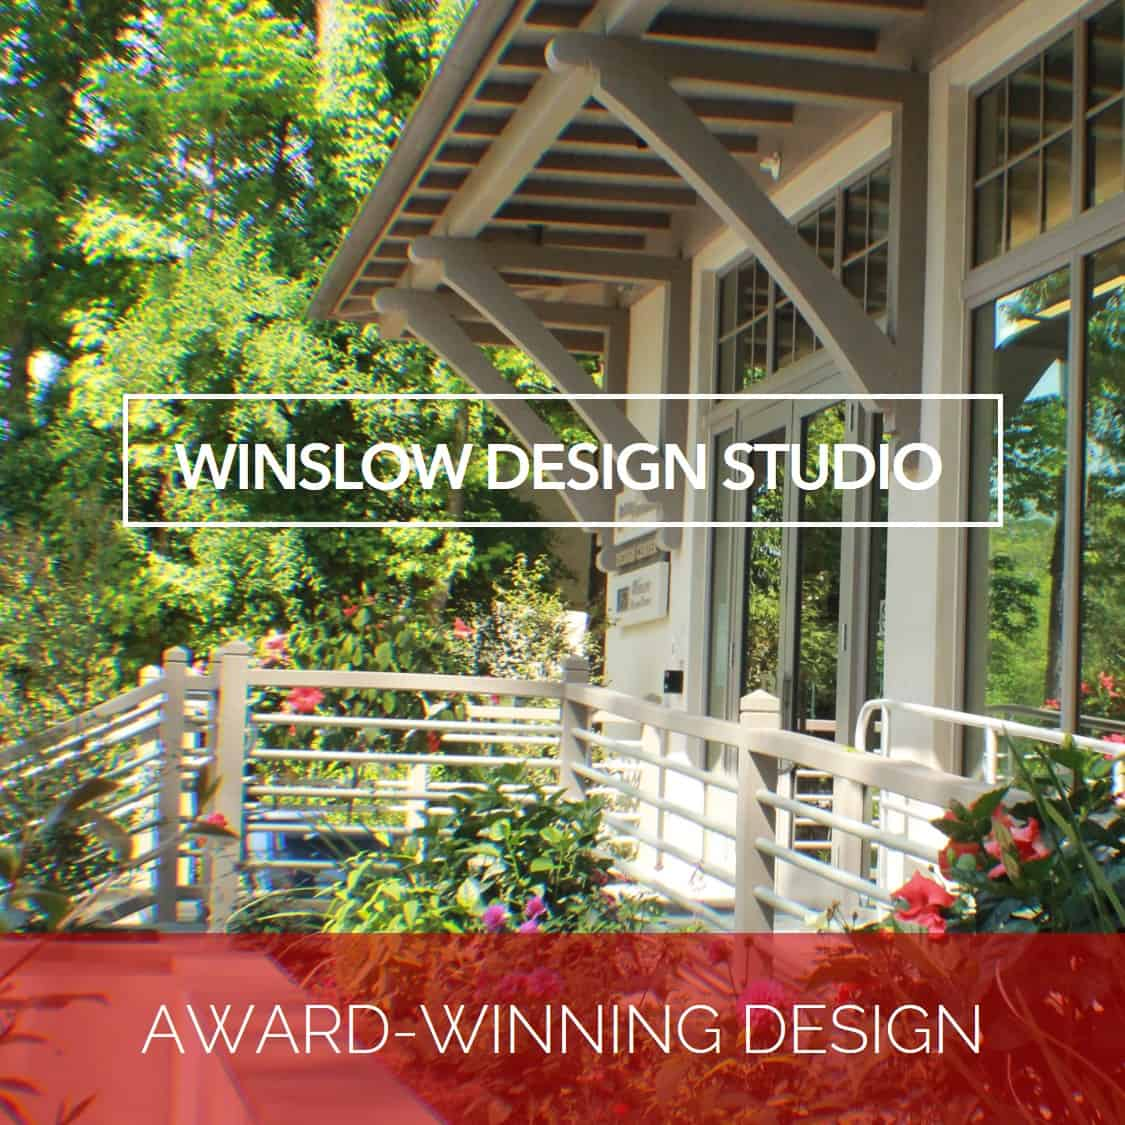 Winslow Design Studio